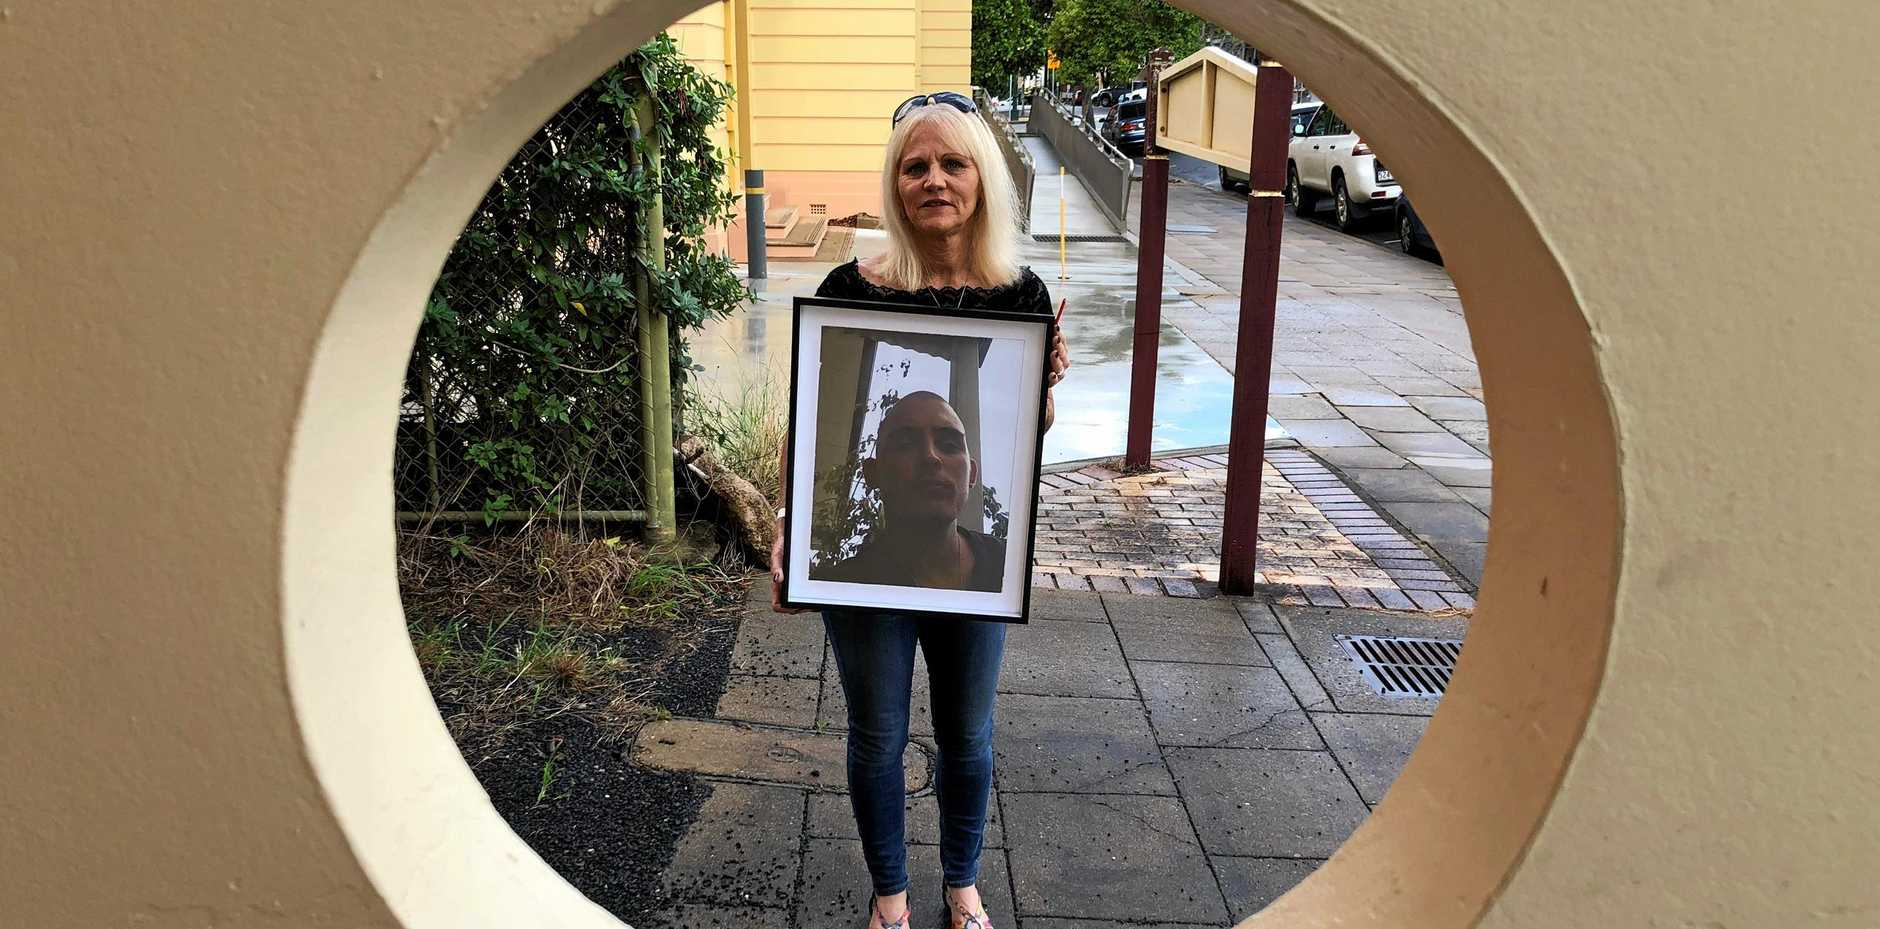 Cindy Littlejohn is holding an event to raise funds for a driver education centre in Hervey Bay after her son Jake was killed in a car crash at Maleny.